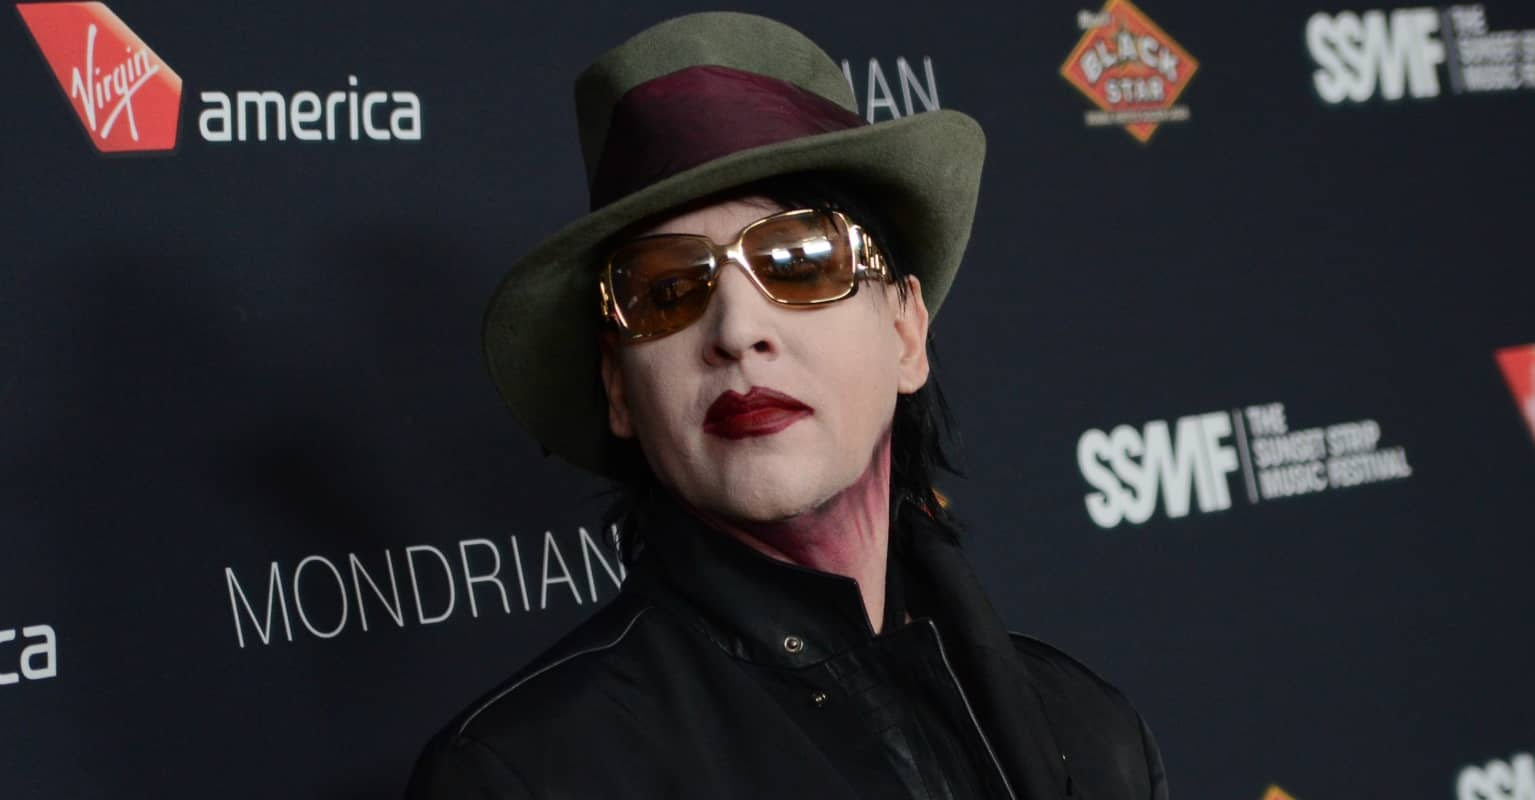 Marilyn Manson breaks silence after five women accuse him of sexual misconduct – including Evan Rachel Wood